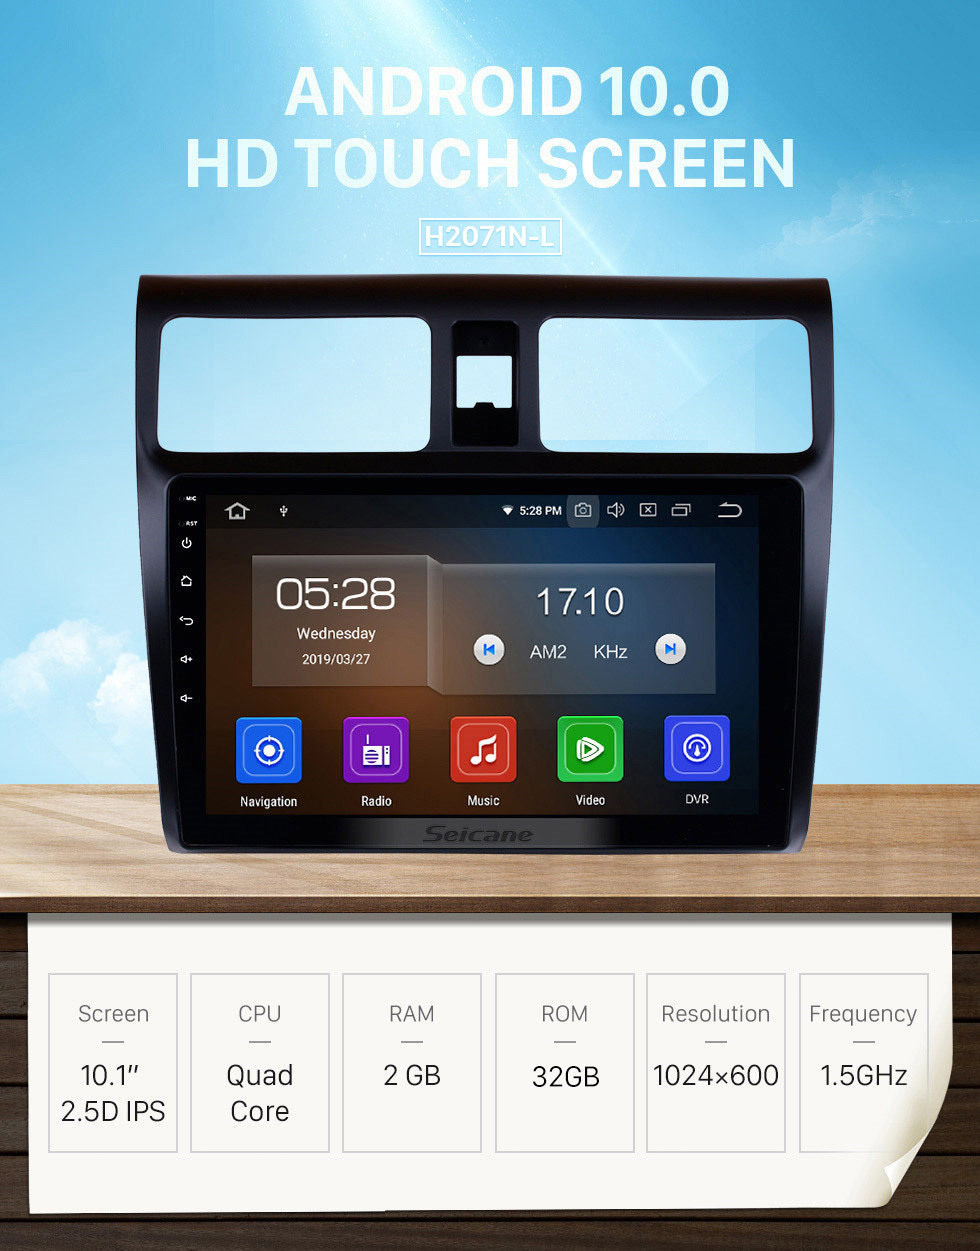 Seicane 10.1 inch Android 10.0 2005-2010 Suzuki Swift HD Touchscreen Radio GPS Navigation Bluetooth WIFI USB Mirror Link Aux Rearview Camera OBDII TPMS 1080P video